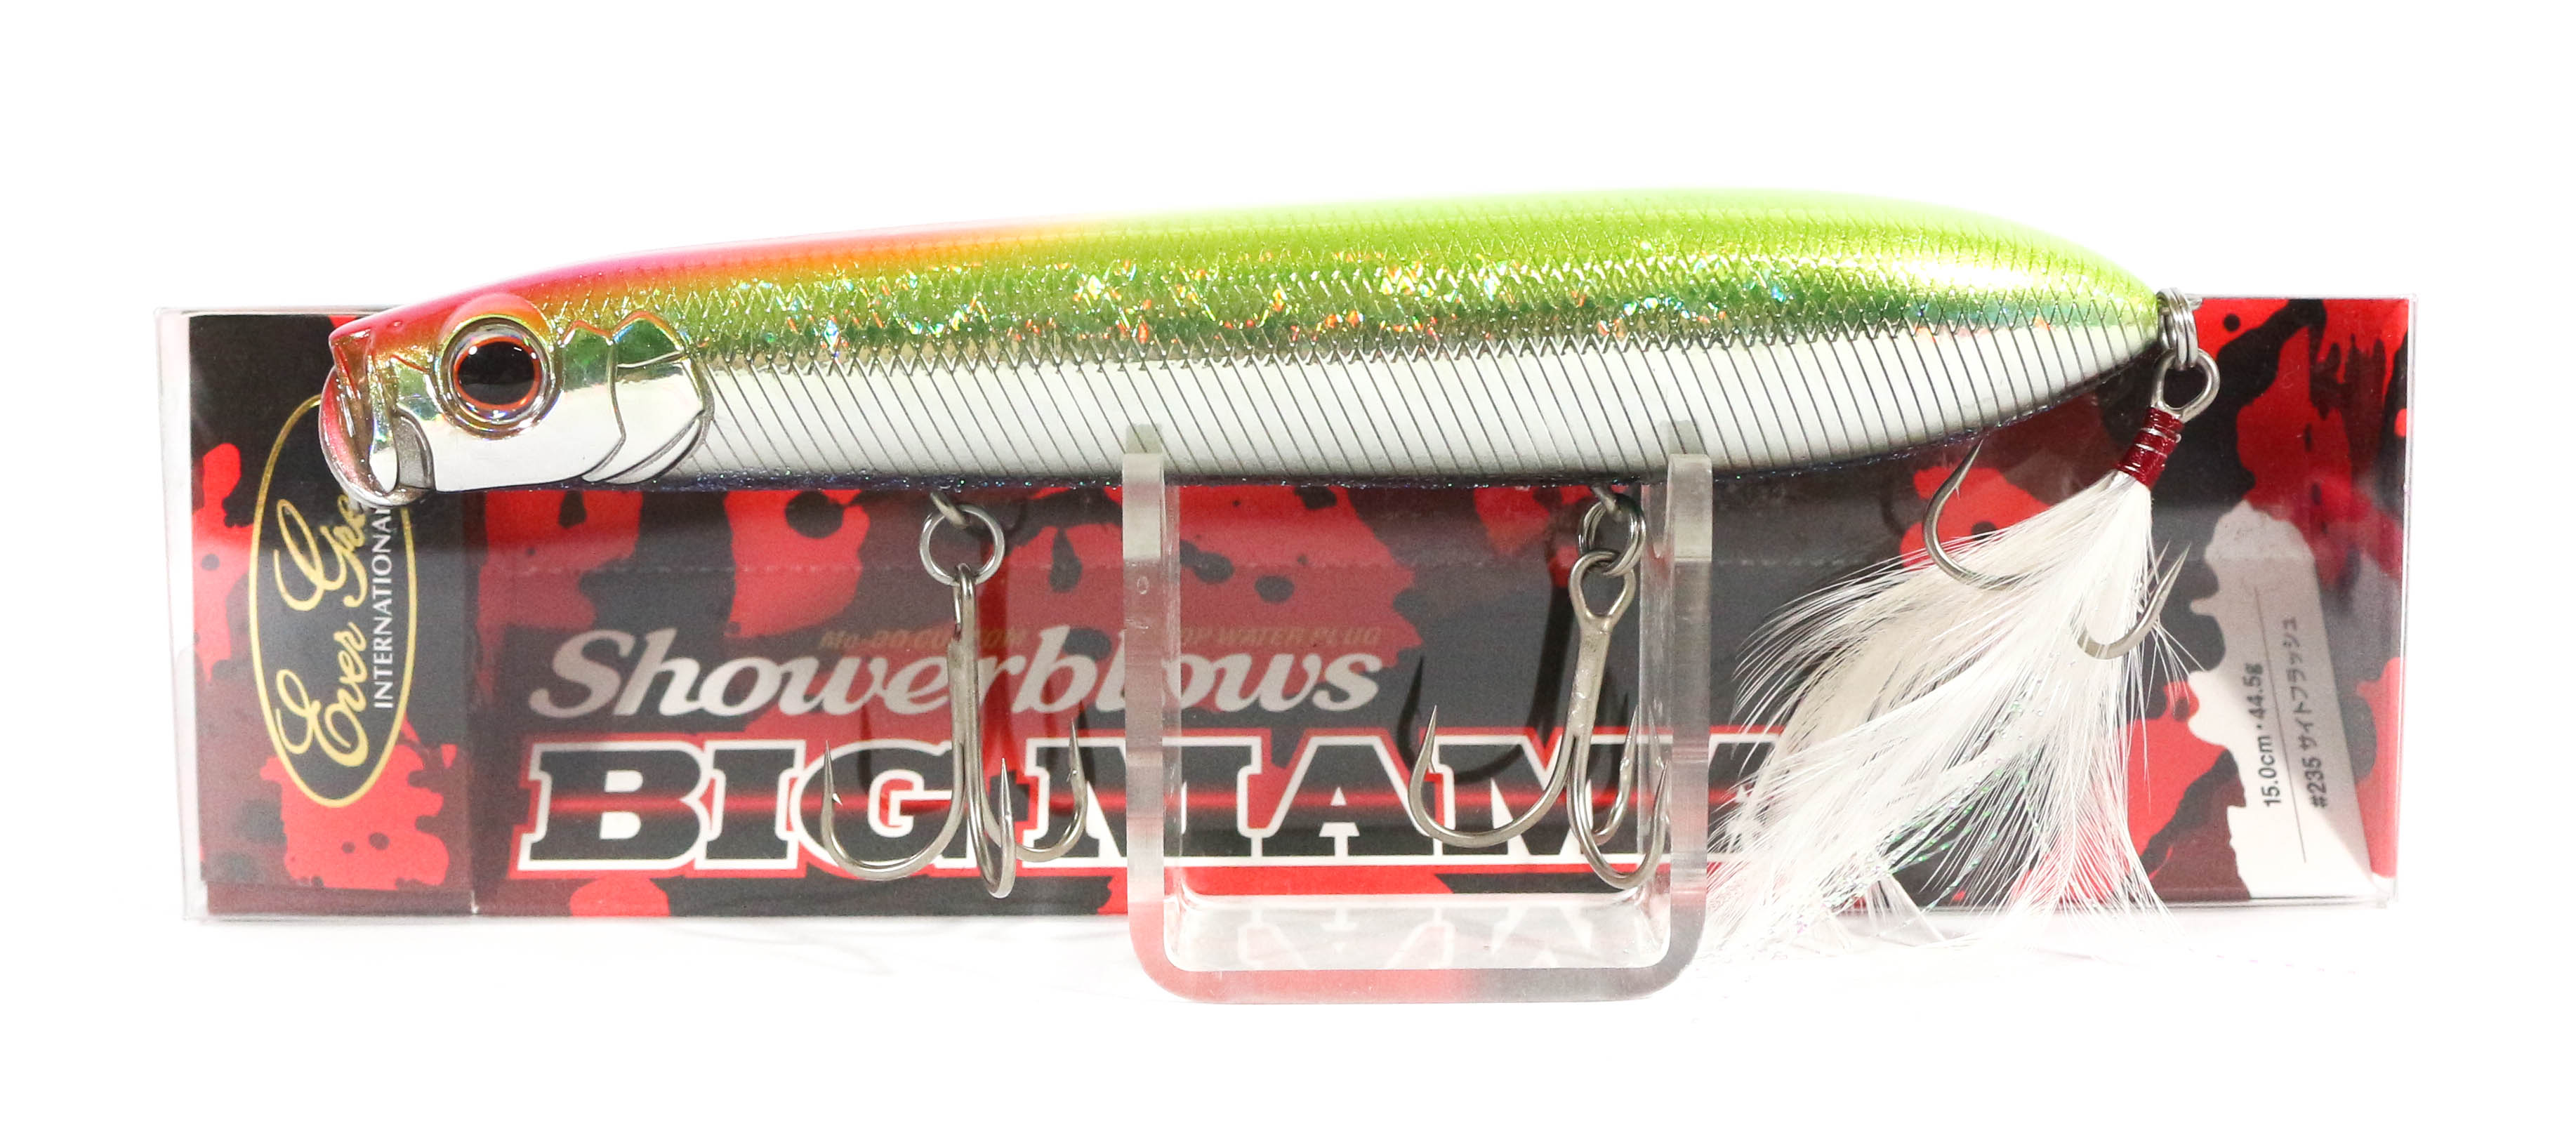 Evergreen Shower Blows Big Mama 150mm Pencil Floating Lure 235 (4311)